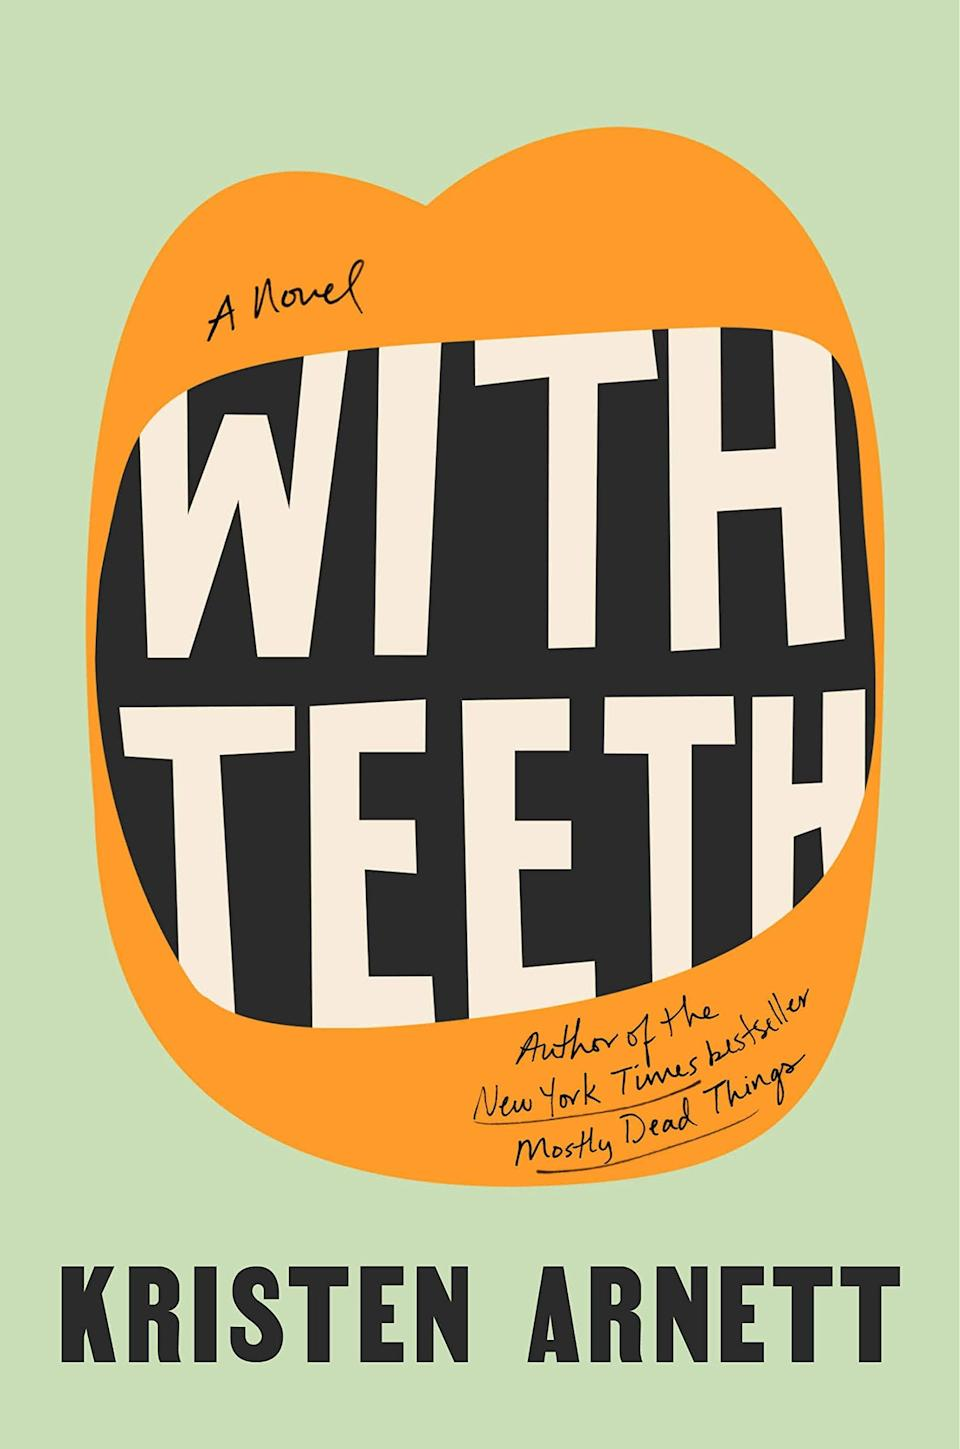 <p>Kristen Arnett's <span><strong>White Teeth</strong></span> delves into the dynamics of a queer family, while shining a light on the complexities of motherhood. Sammie Lucas tries her best to give her son Samson everything he needs, but as he becomes more sullen and dangerous, she begins to resent her unflappable wife Monika and fear for her family's future. </p> <p><em>Out June 1</em></p>